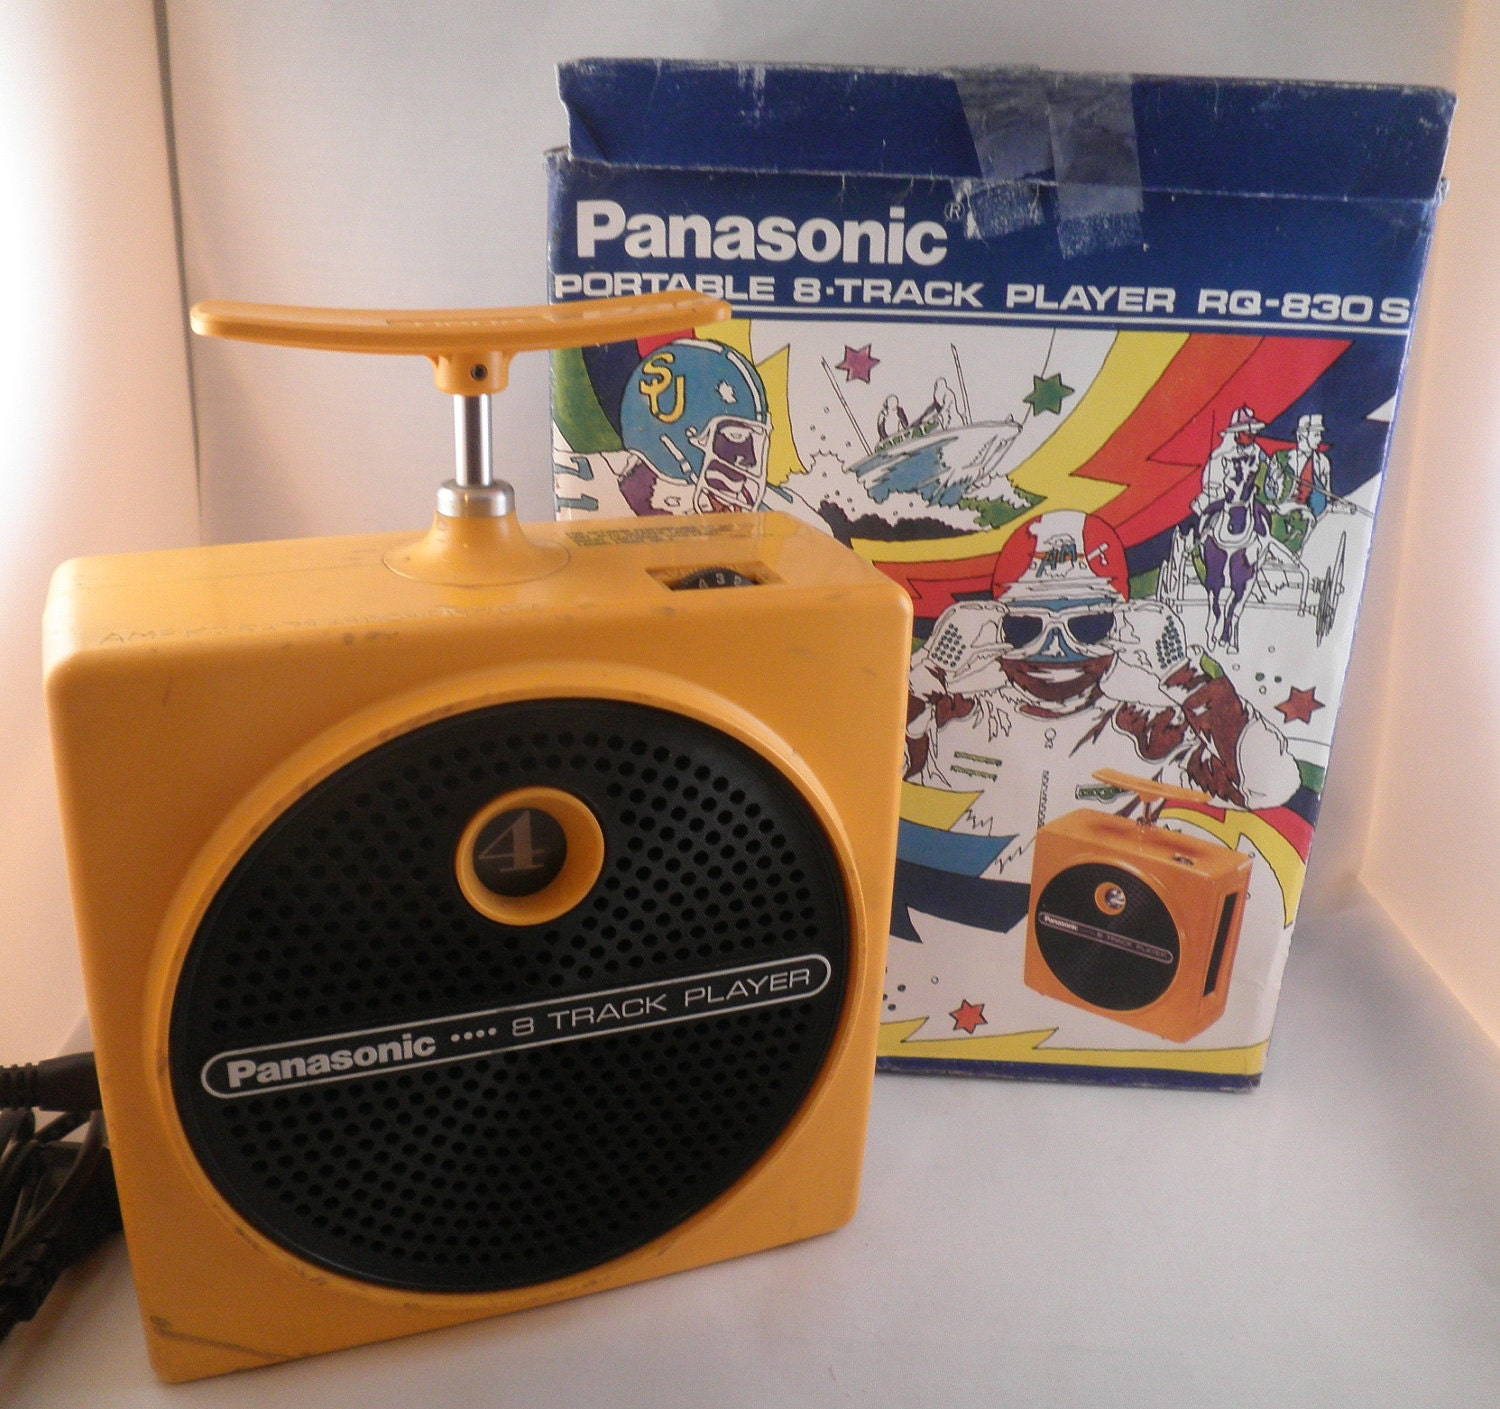 Yellow Panasonic TNT 8-track player